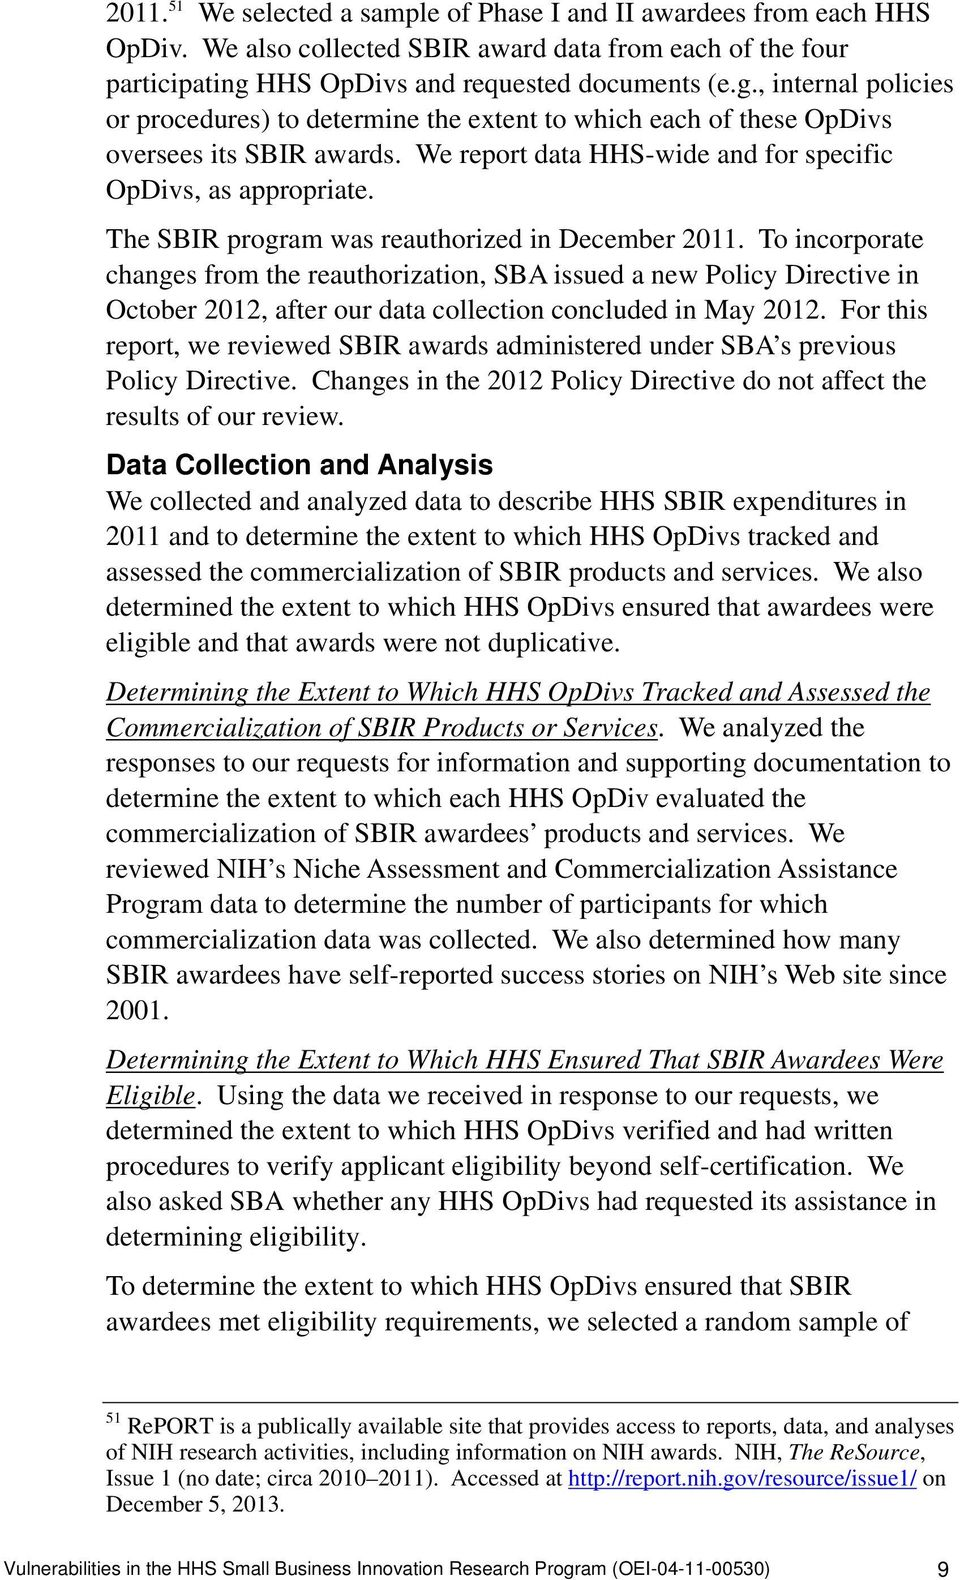 We report data HHS-wide and for specific OpDivs, as appropriate. The SBIR program was reauthorized in December 2011.